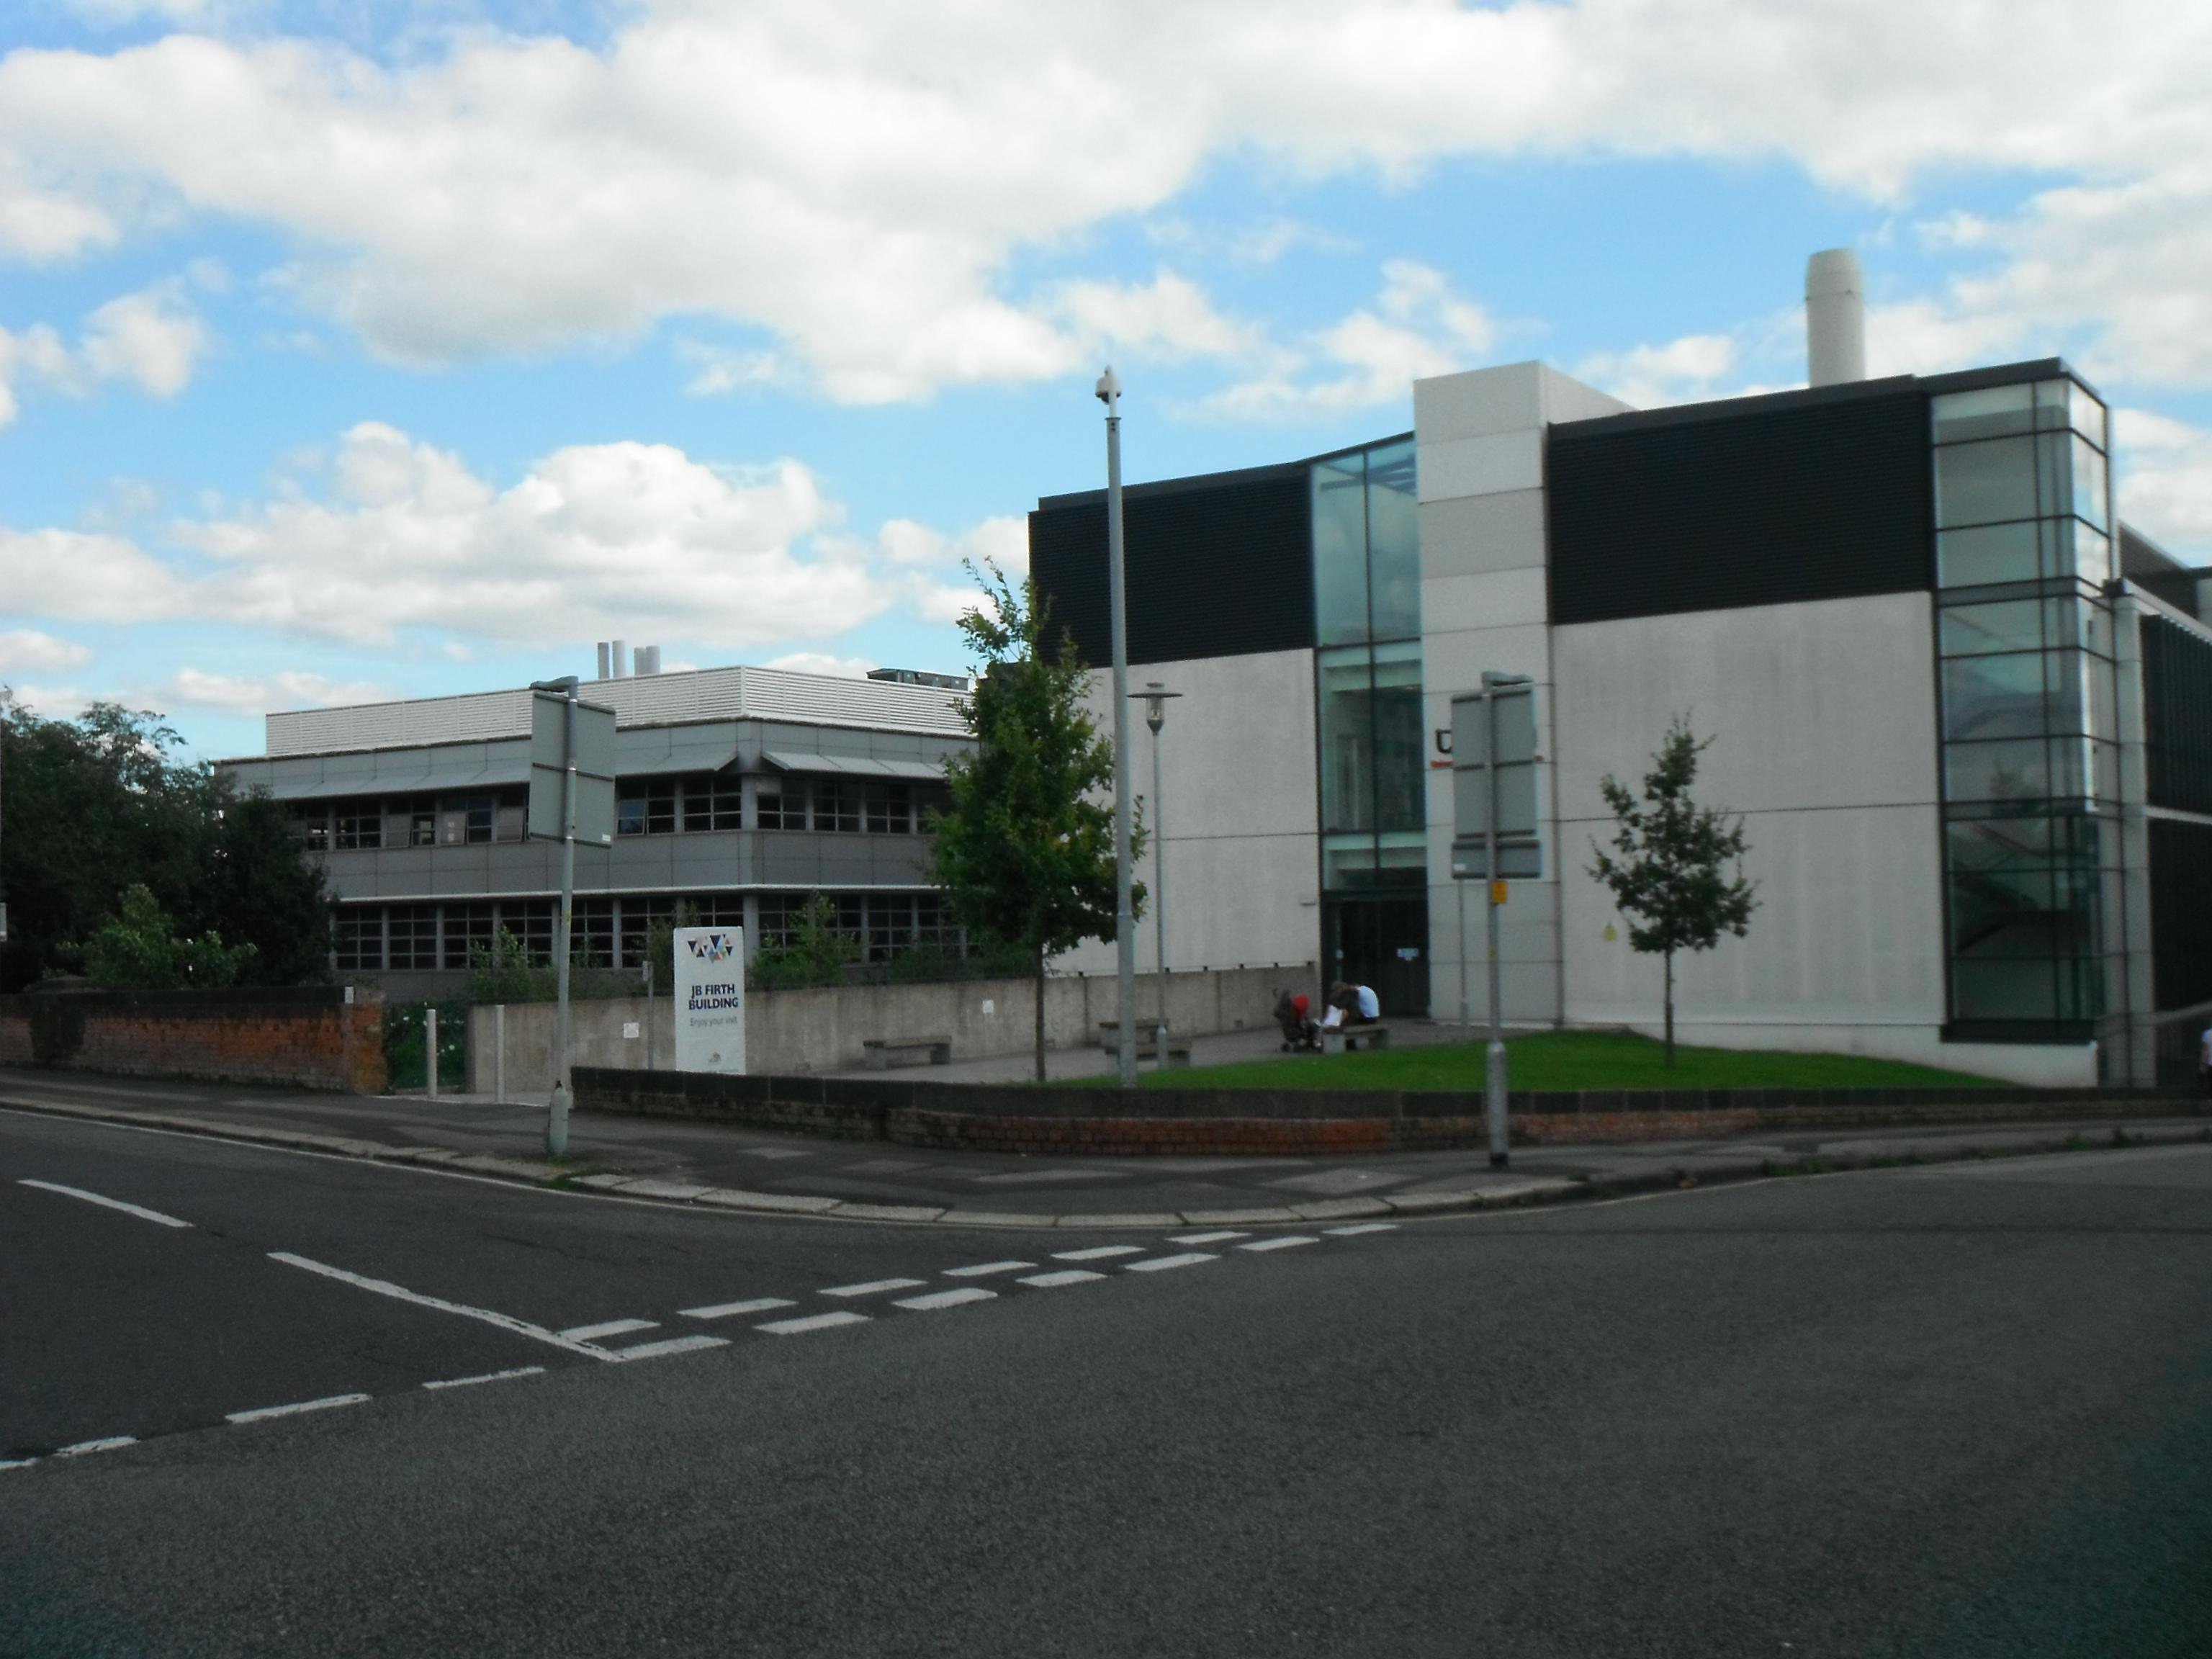 Photo taken by me – the University Of Lancashire campus